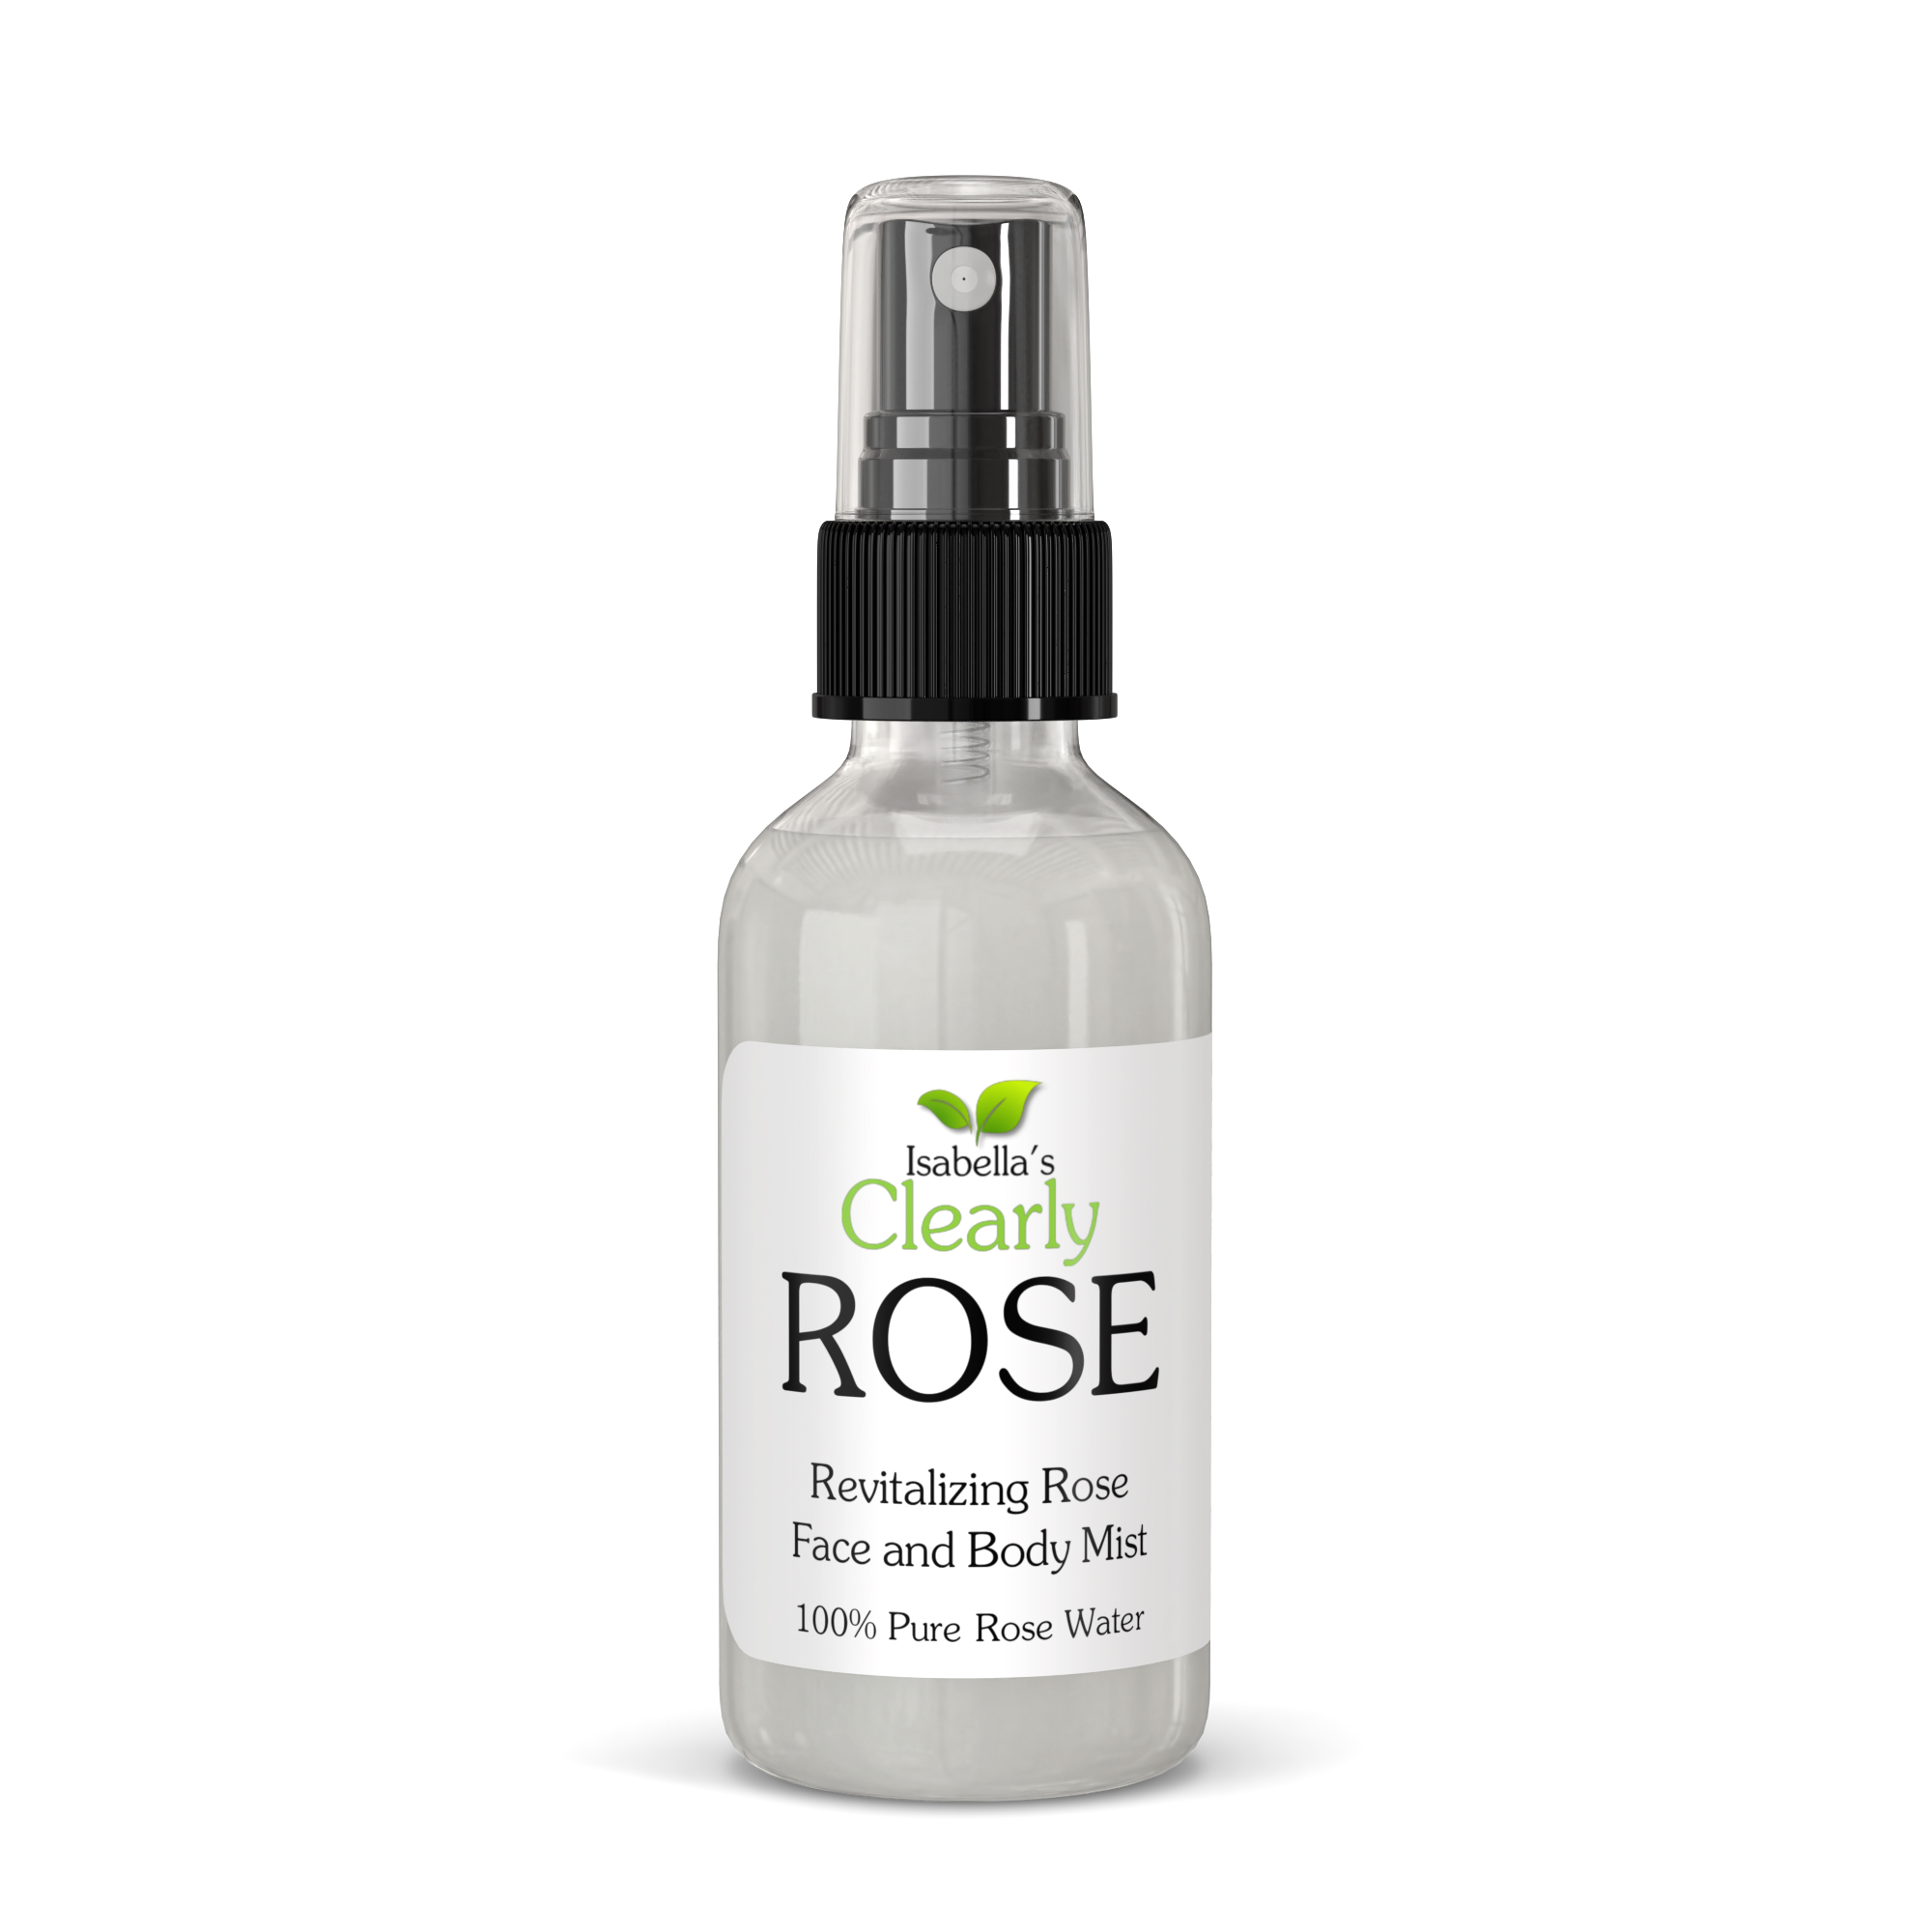 Clearly ROSE, Revitalizing Rose Water Body Mist